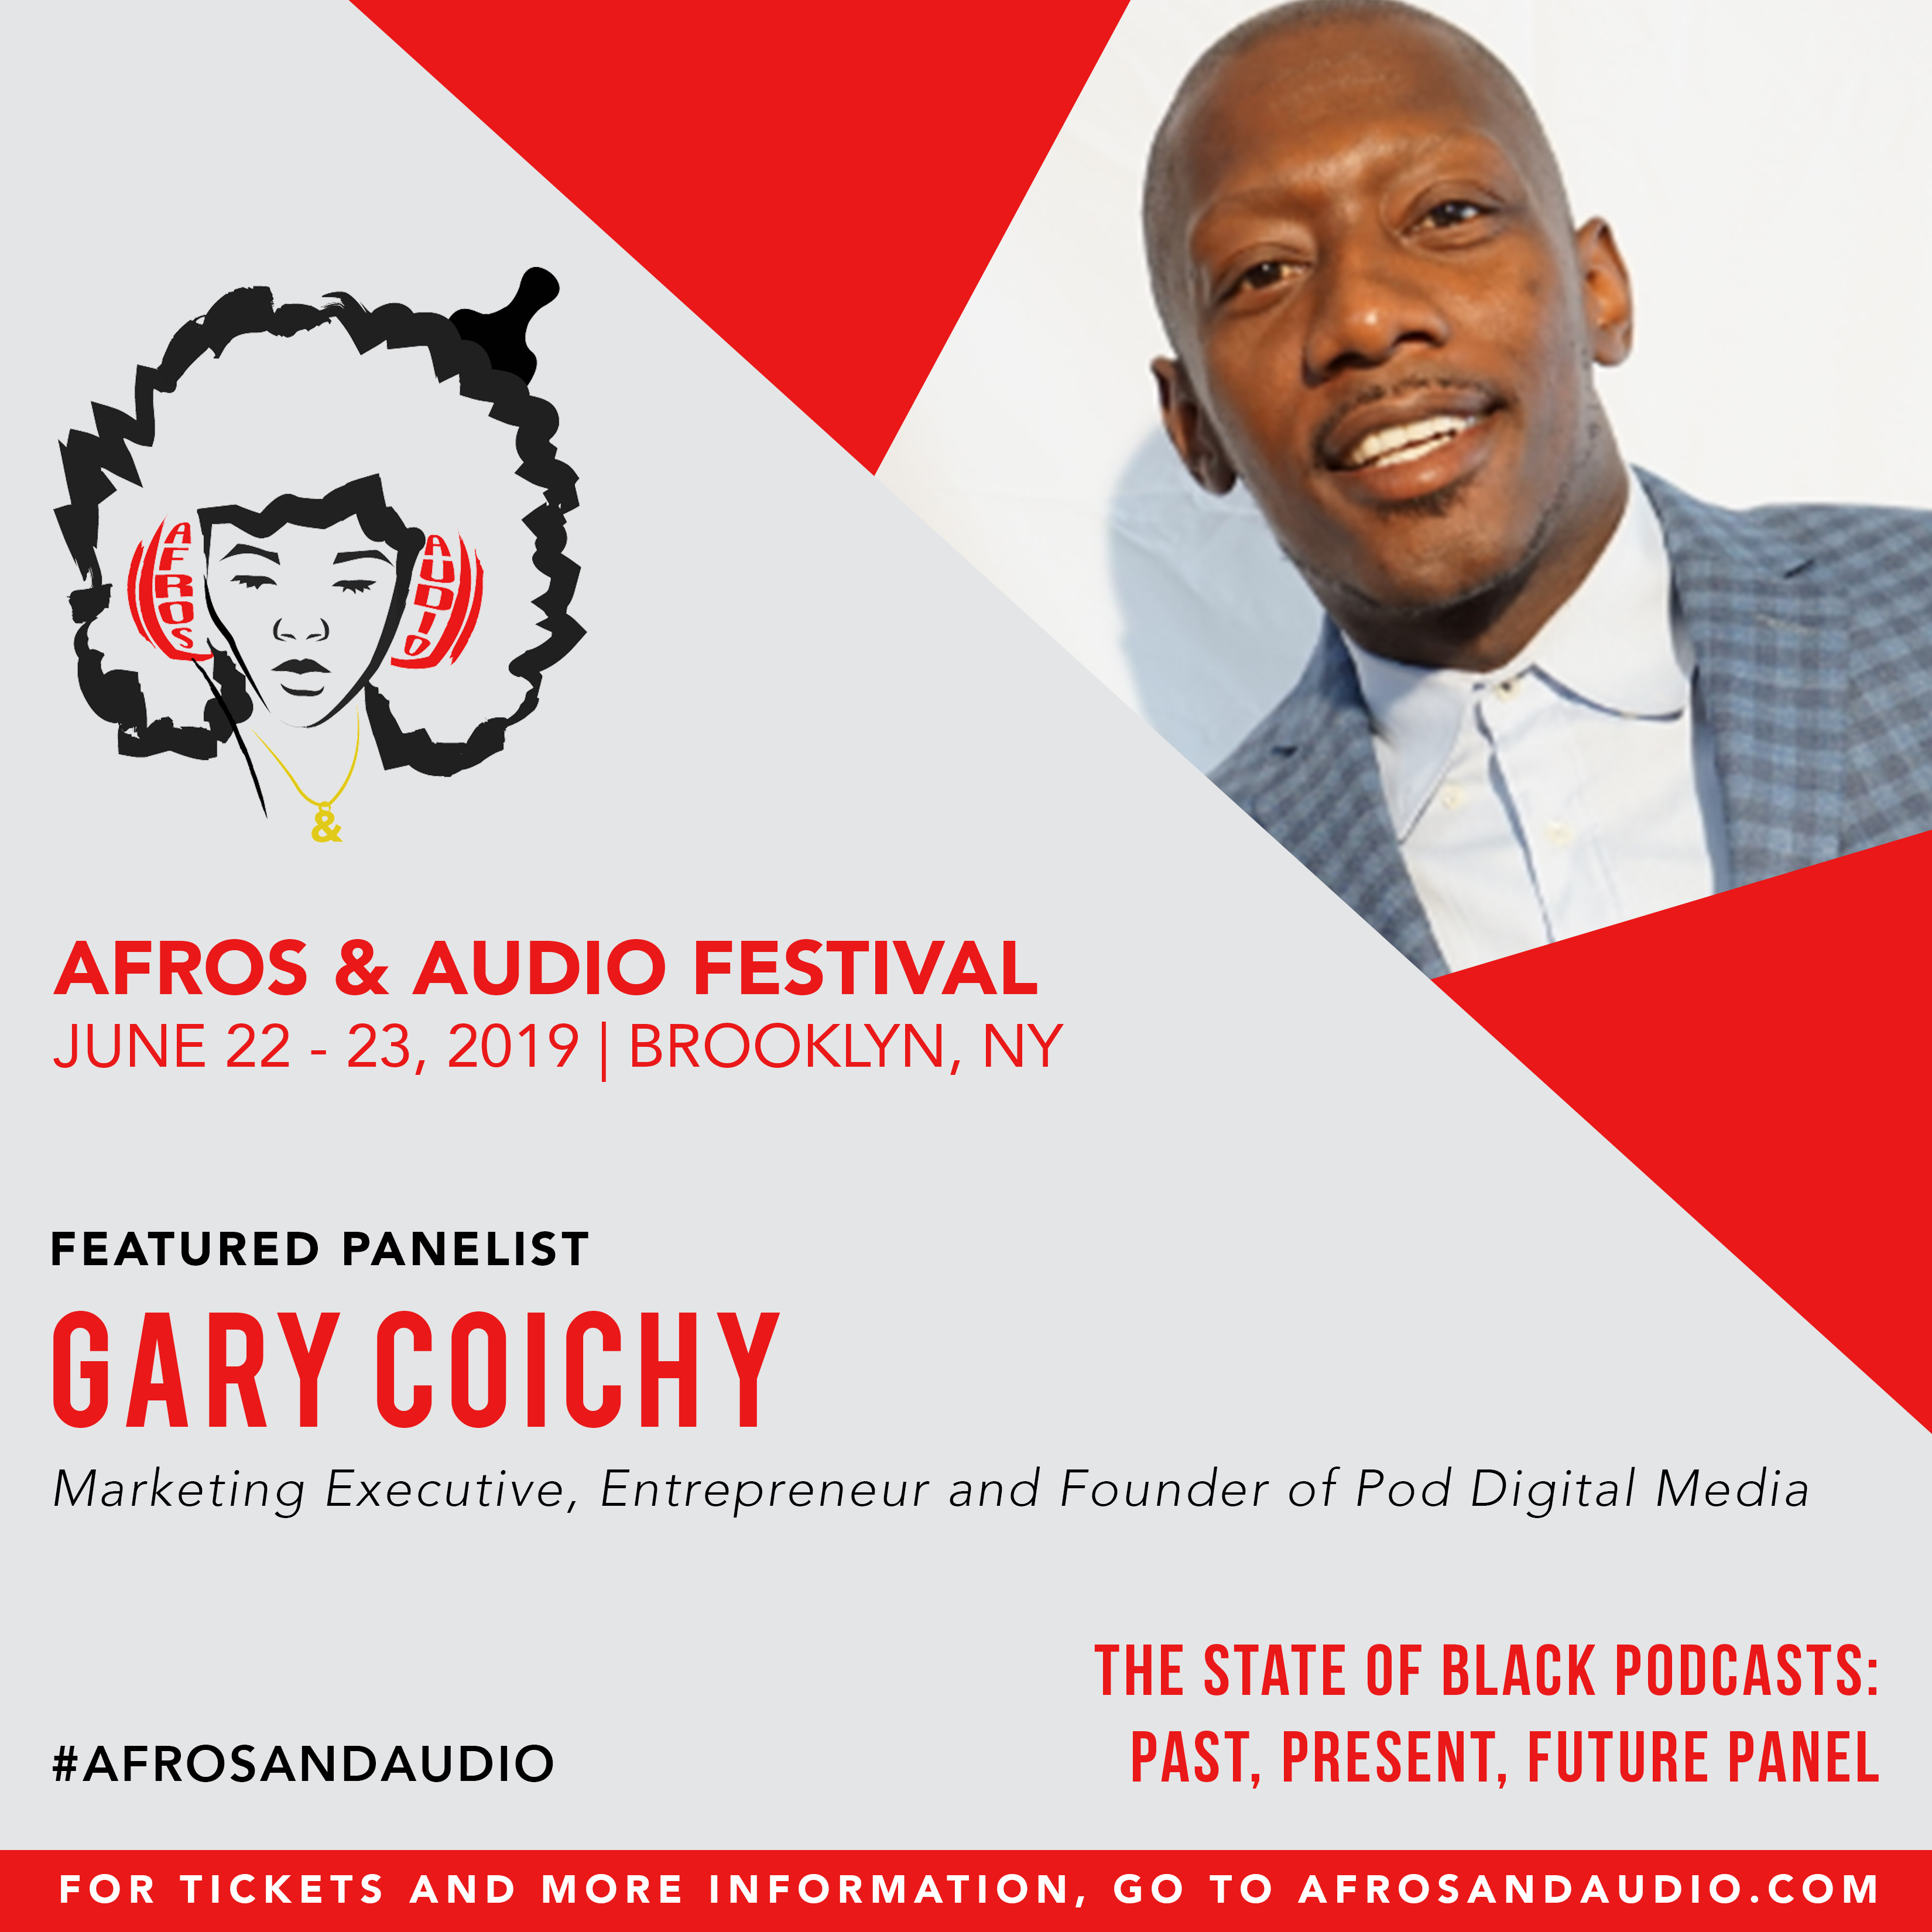 AfrosandAudio Presenter Posts - Gary